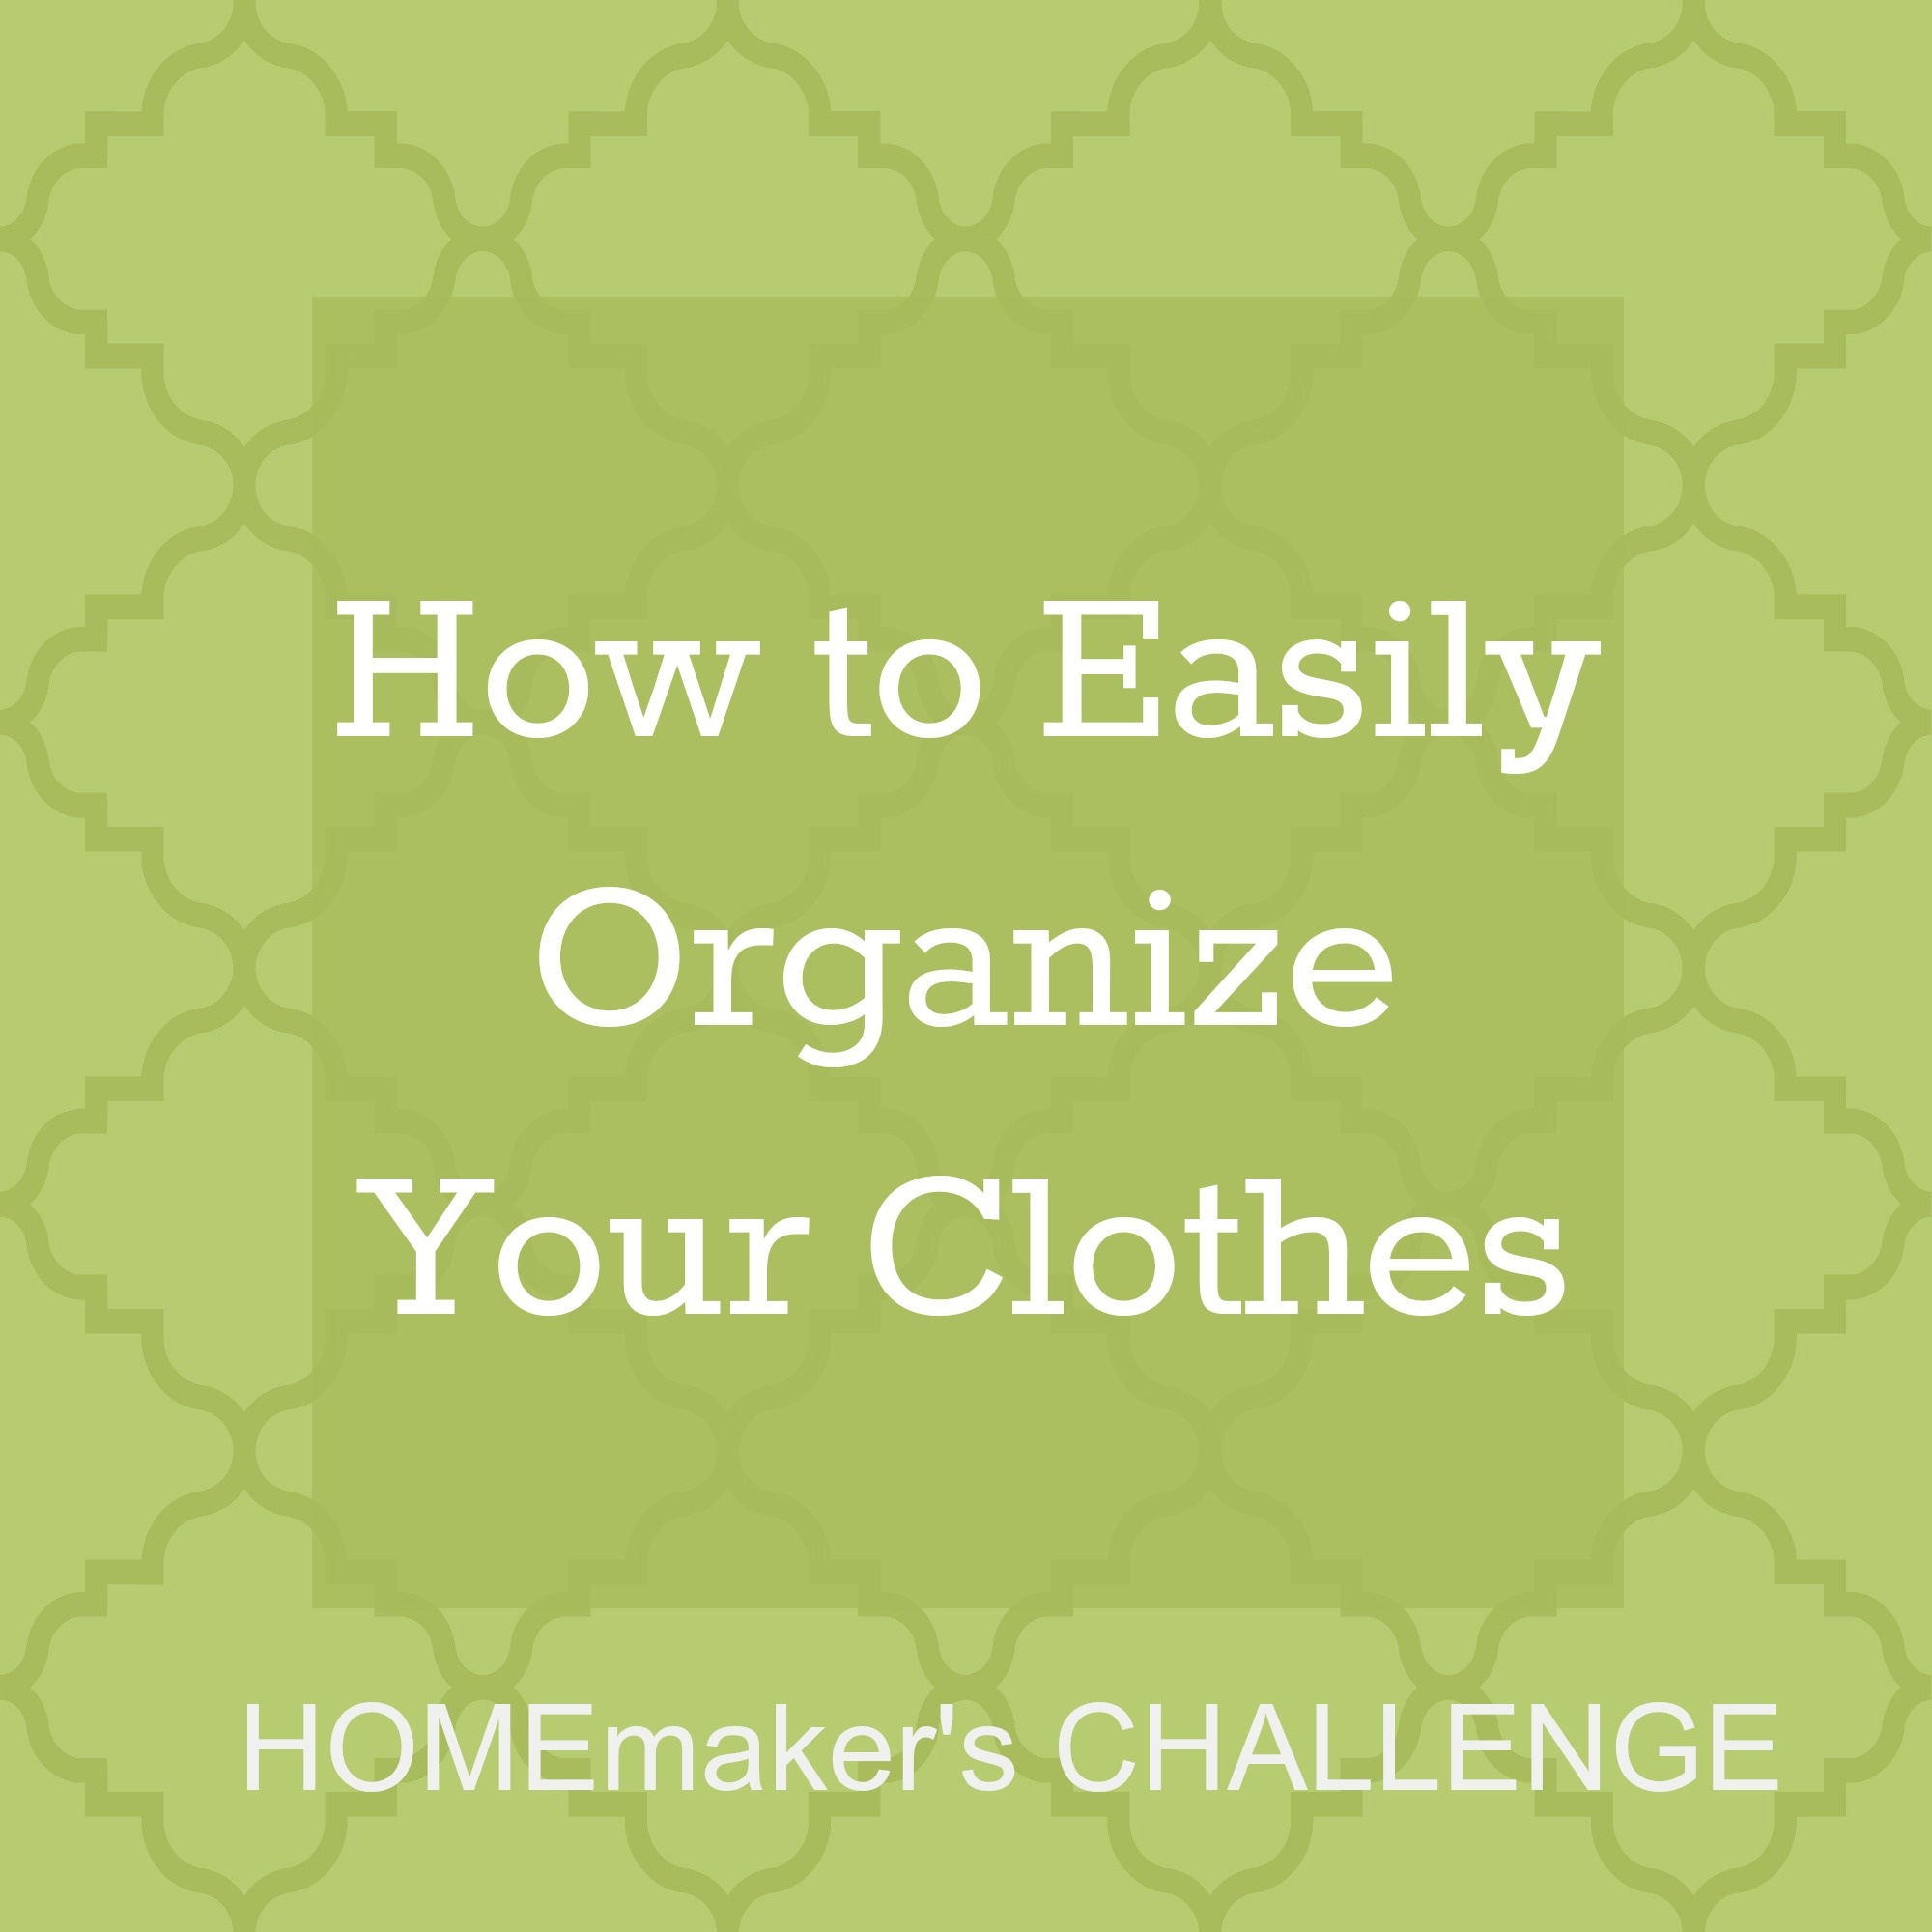 How to Easily Organize Your Clothes